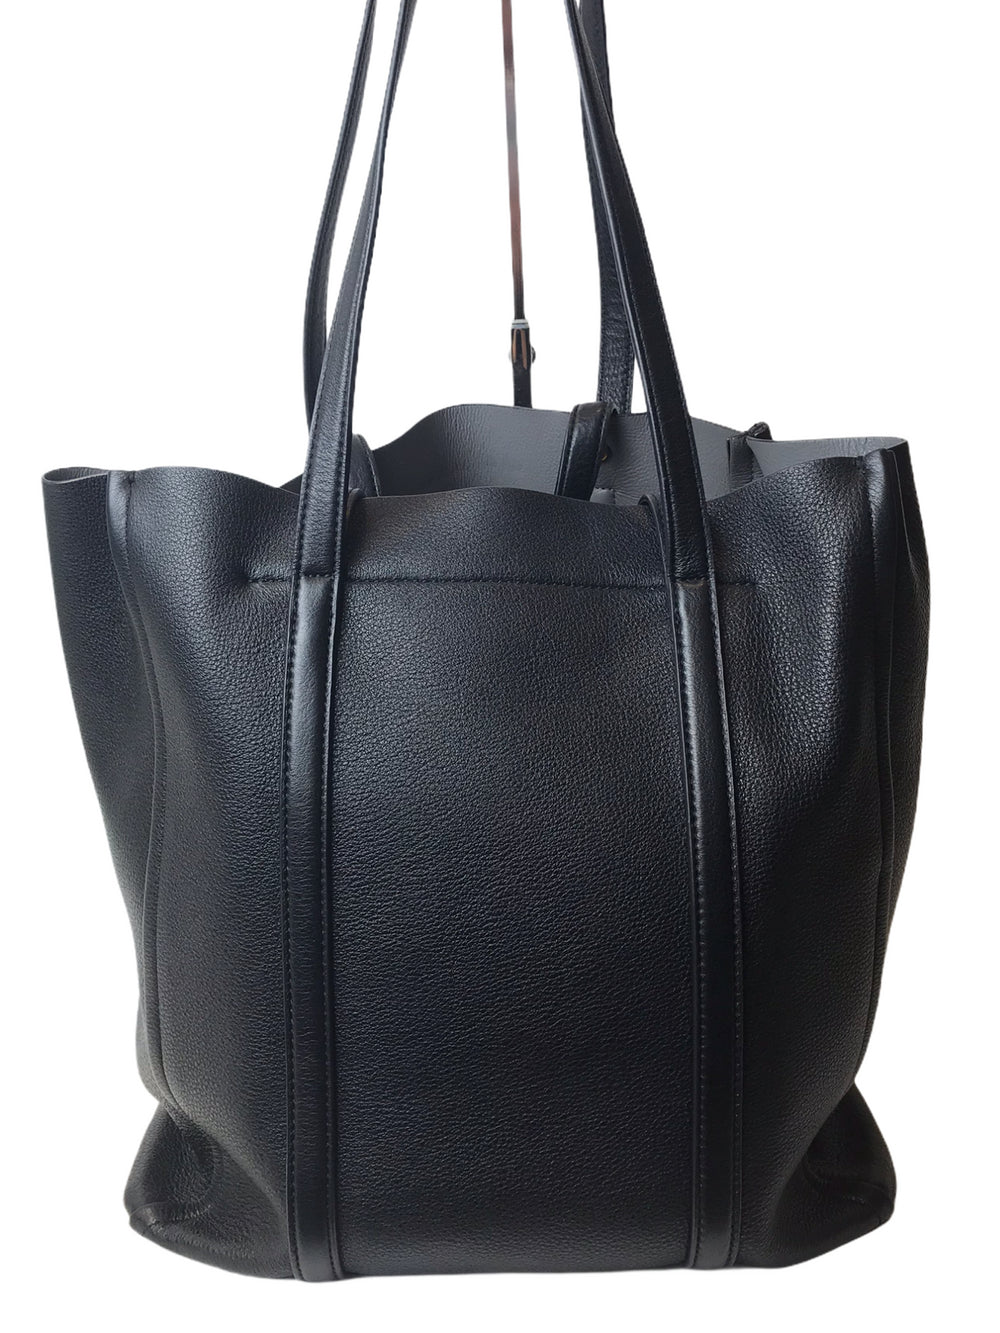 Marc Jacobs Black Pebbled Leather Tote